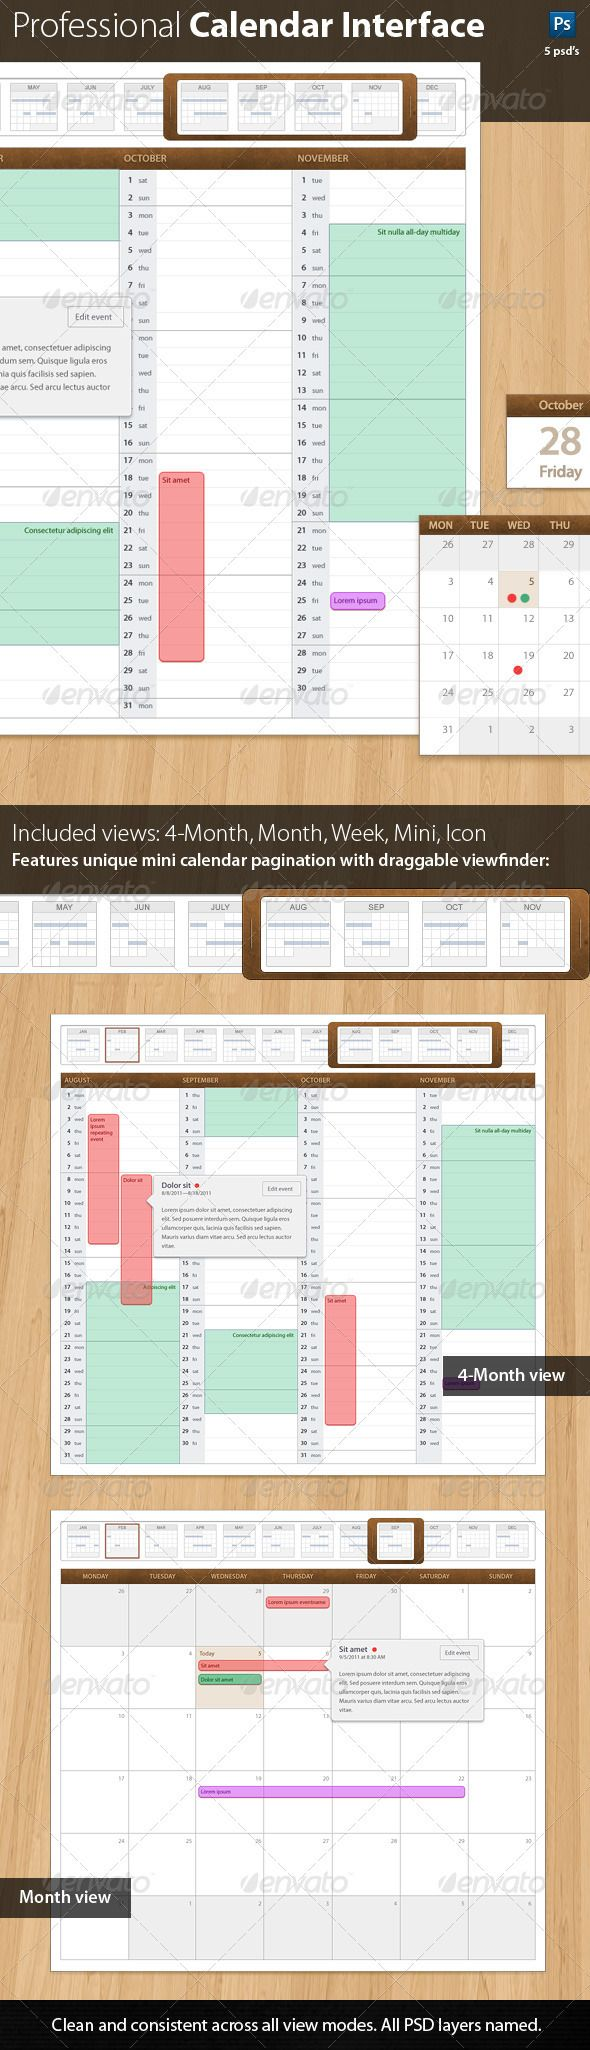 Leatherbound 1.0 Professional Calendar Template - #User #Interfaces #Web Elements Download here: https://graphicriver.net/item/leatherbound-10-professional-calendar-template/595468?ref=alena994